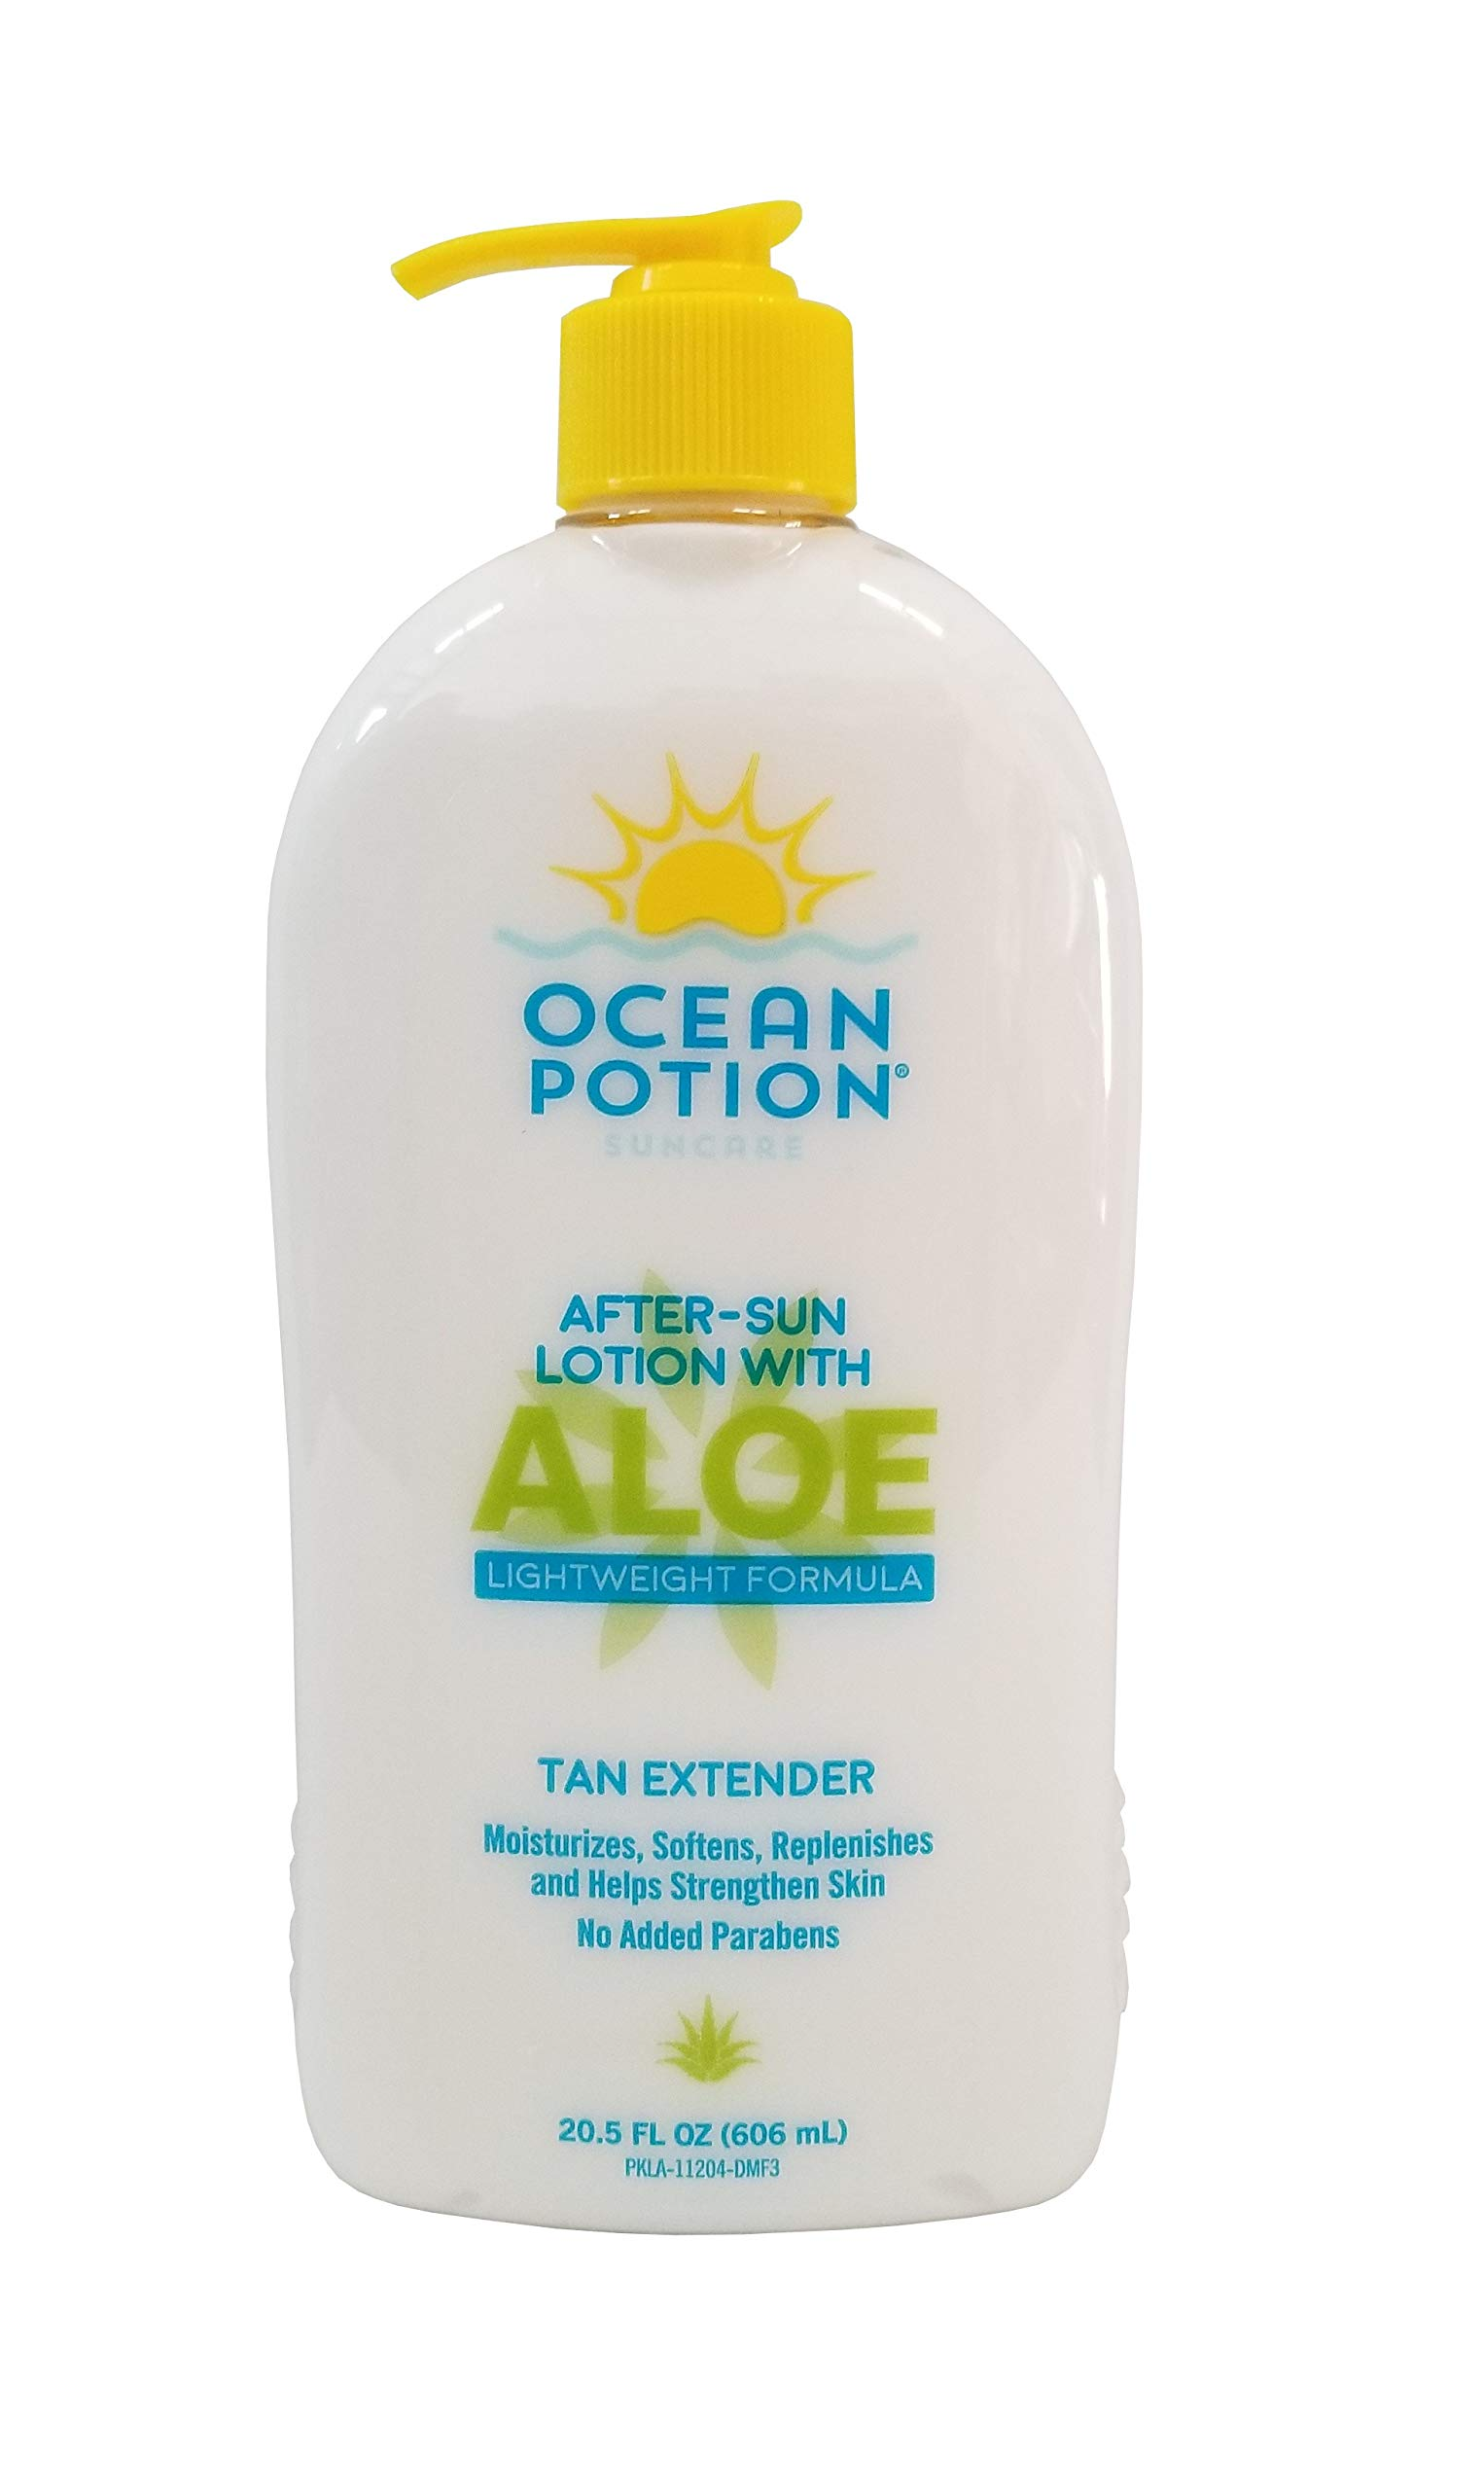 Ocean Potion After Sun Lotion with Aloe Tan Extender, 20.5 Ounce Bottle, Pack of 2 by Ocean Potion